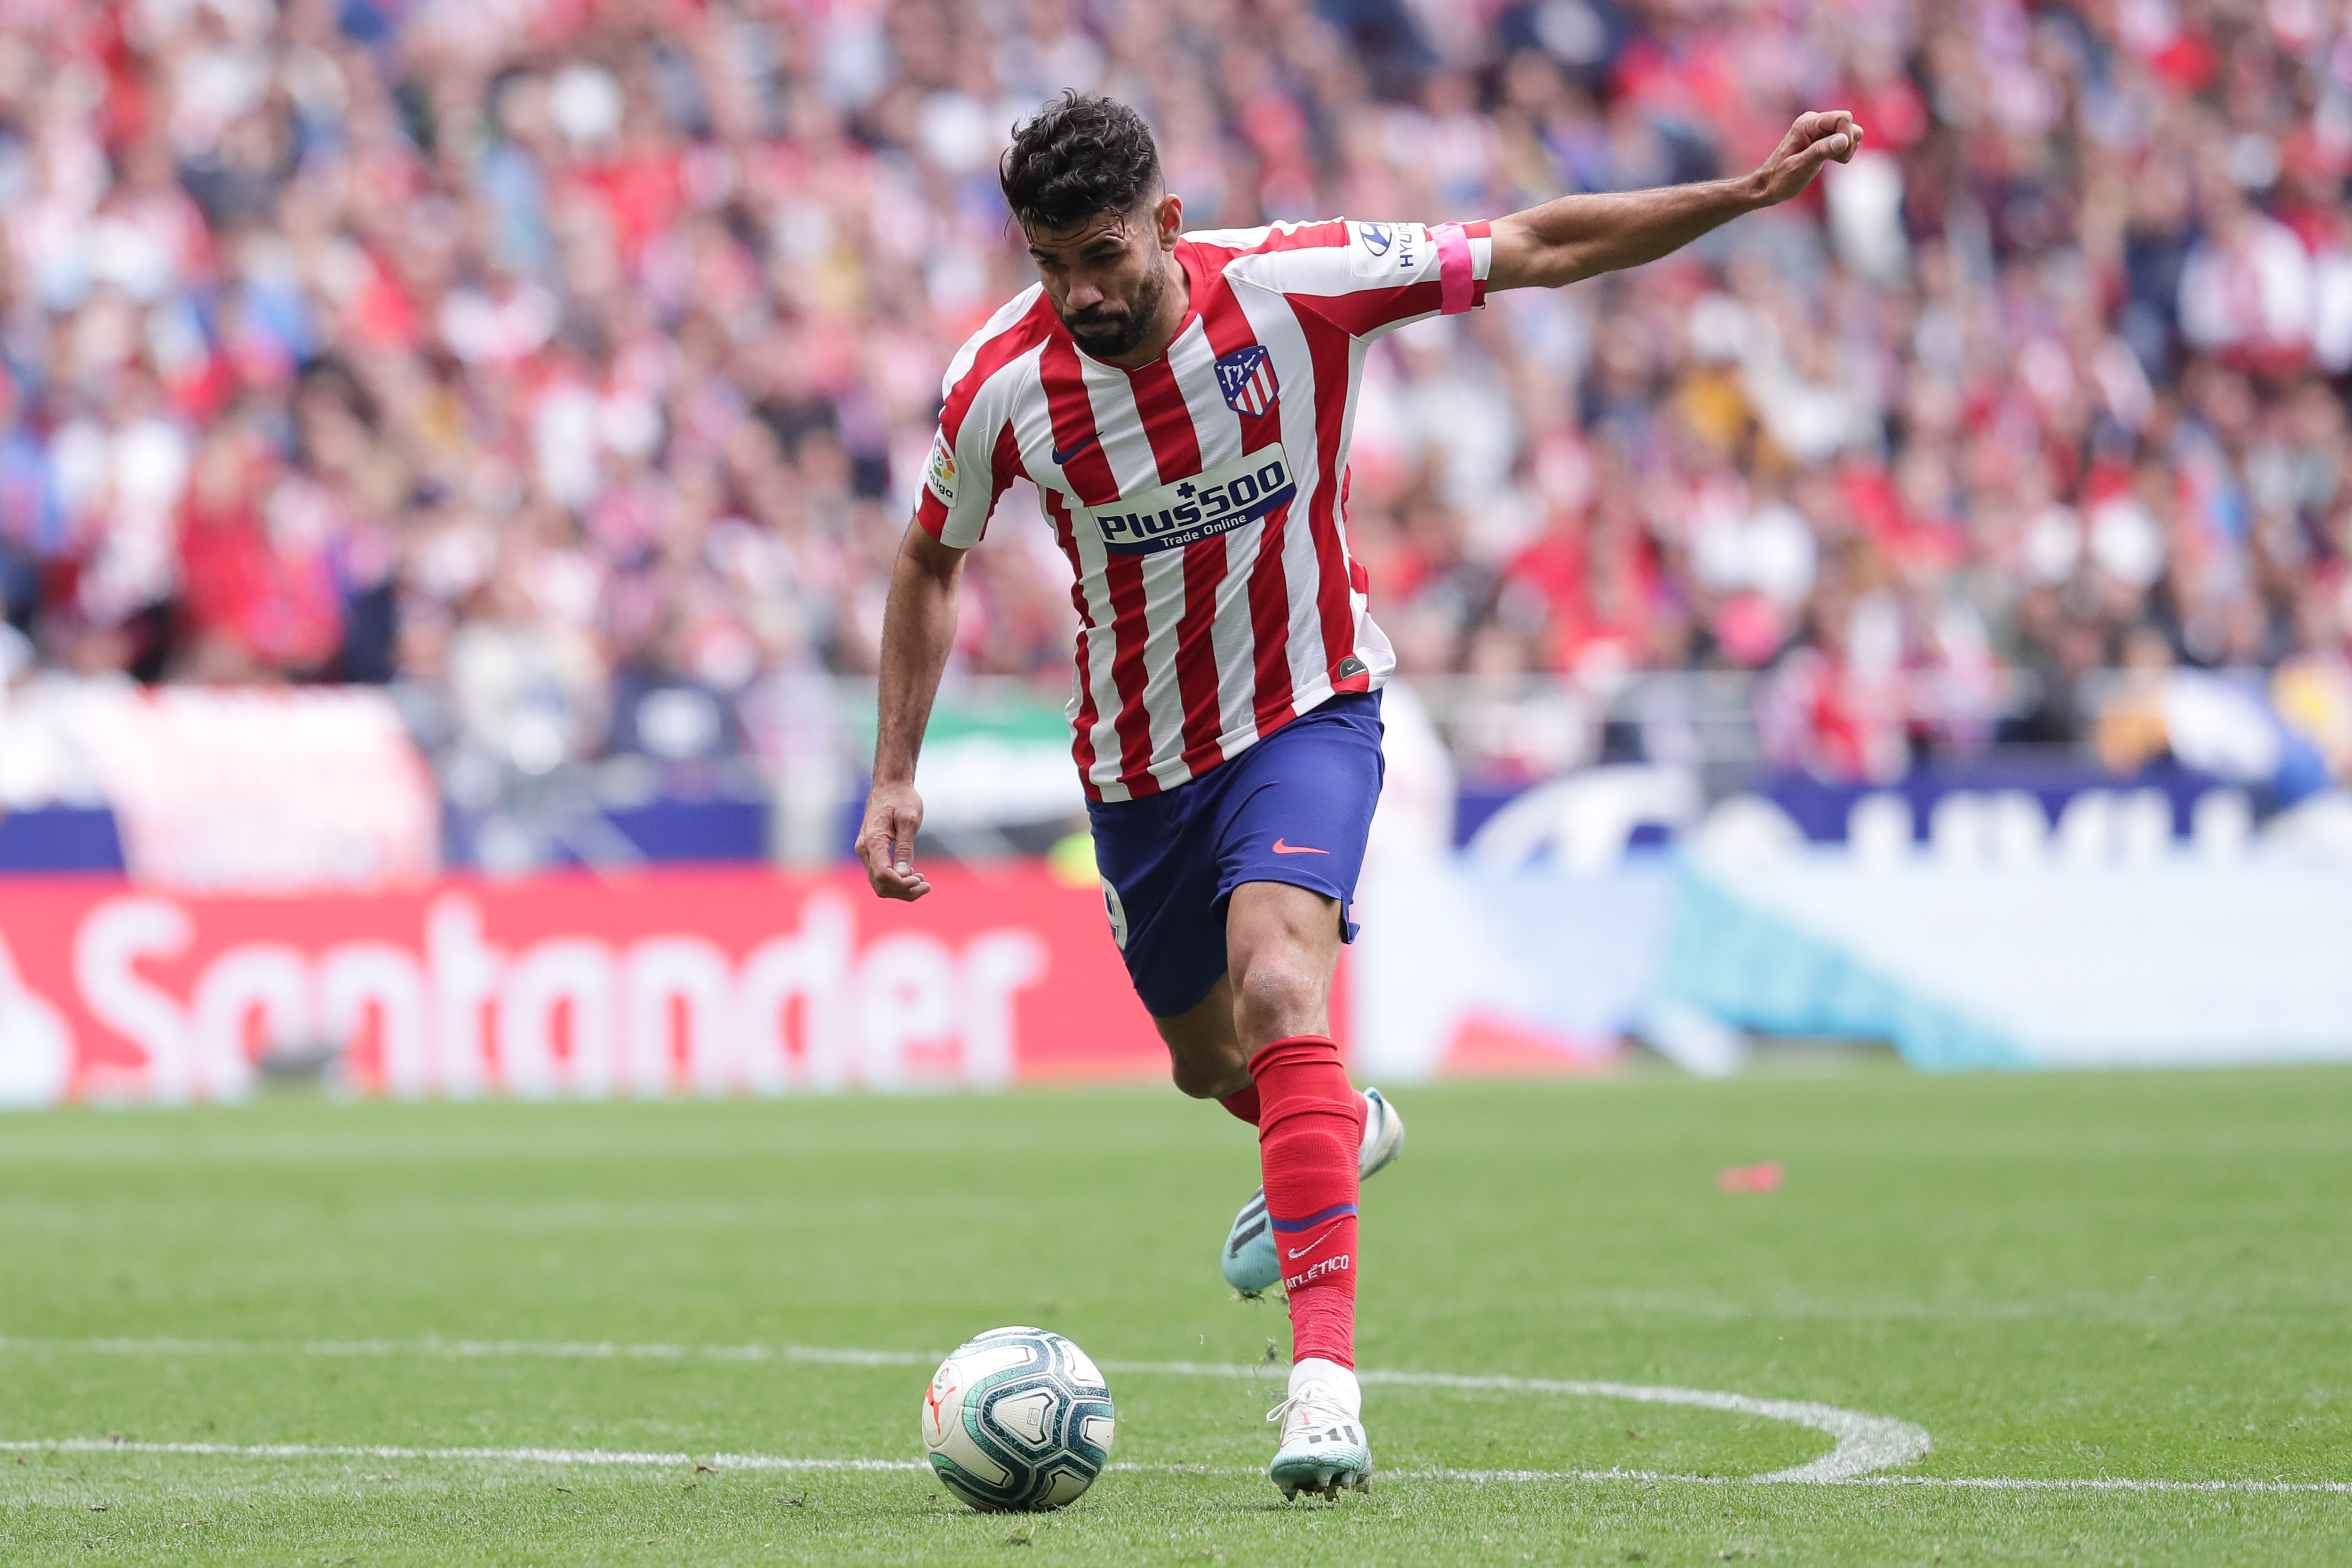 Time for Diego Costa to step up (Photo by Gonzalo Arroyo Moreno/Getty Images)